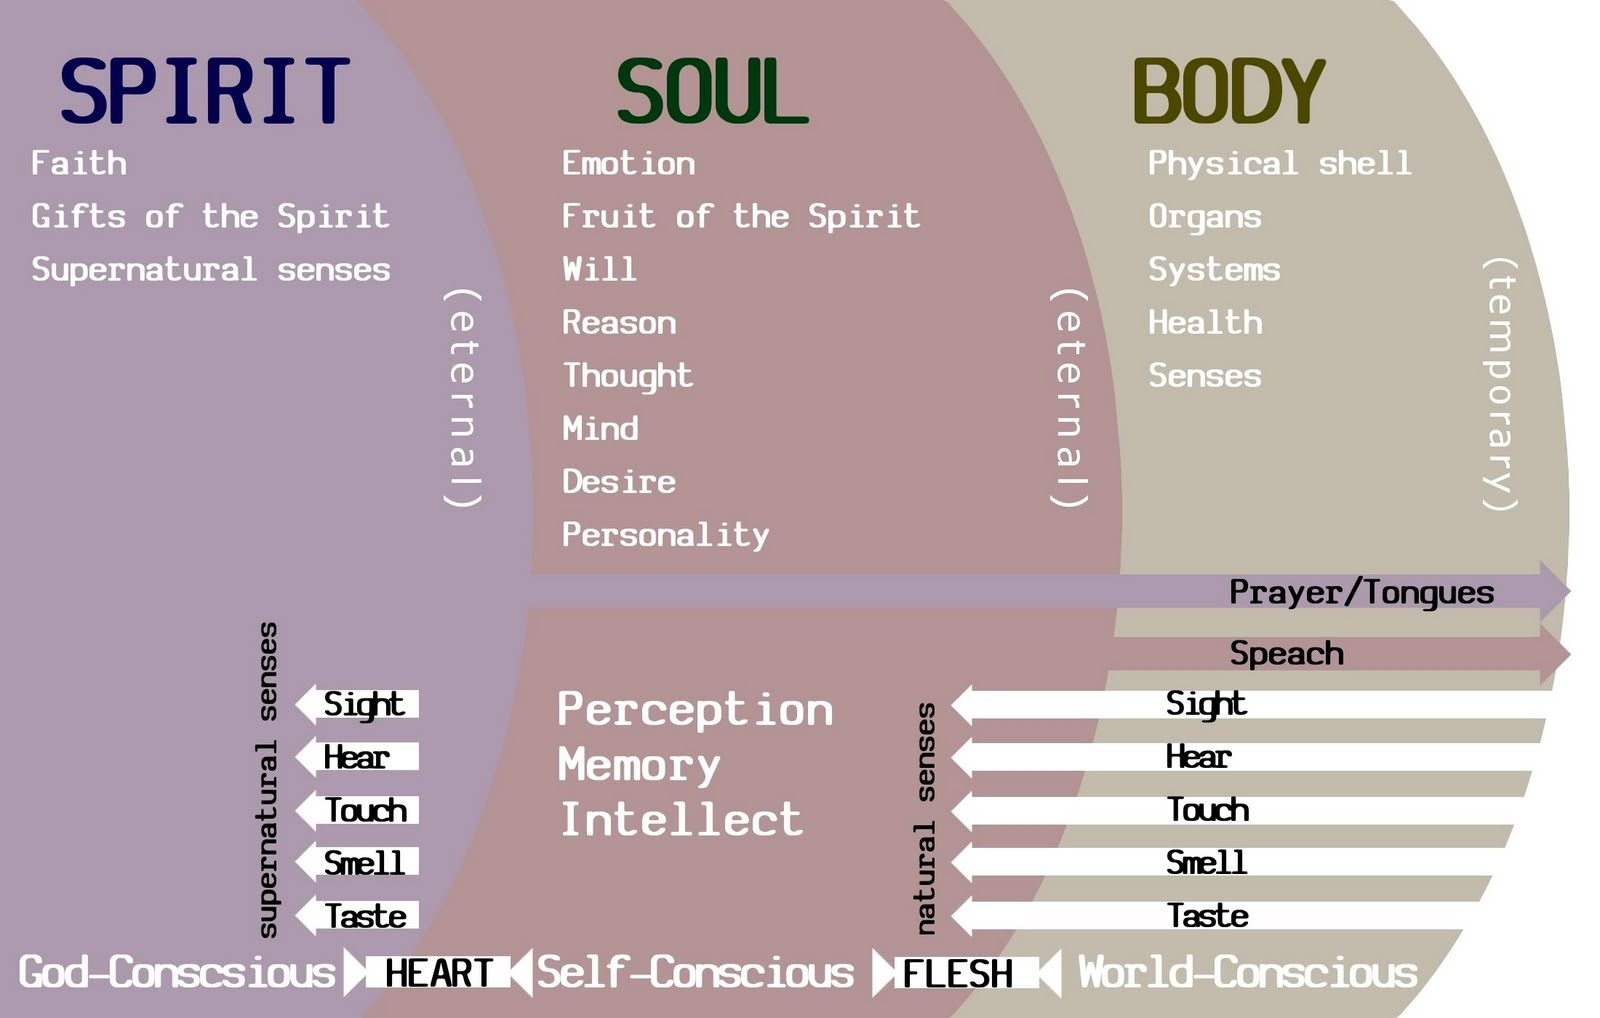 The Priest soul